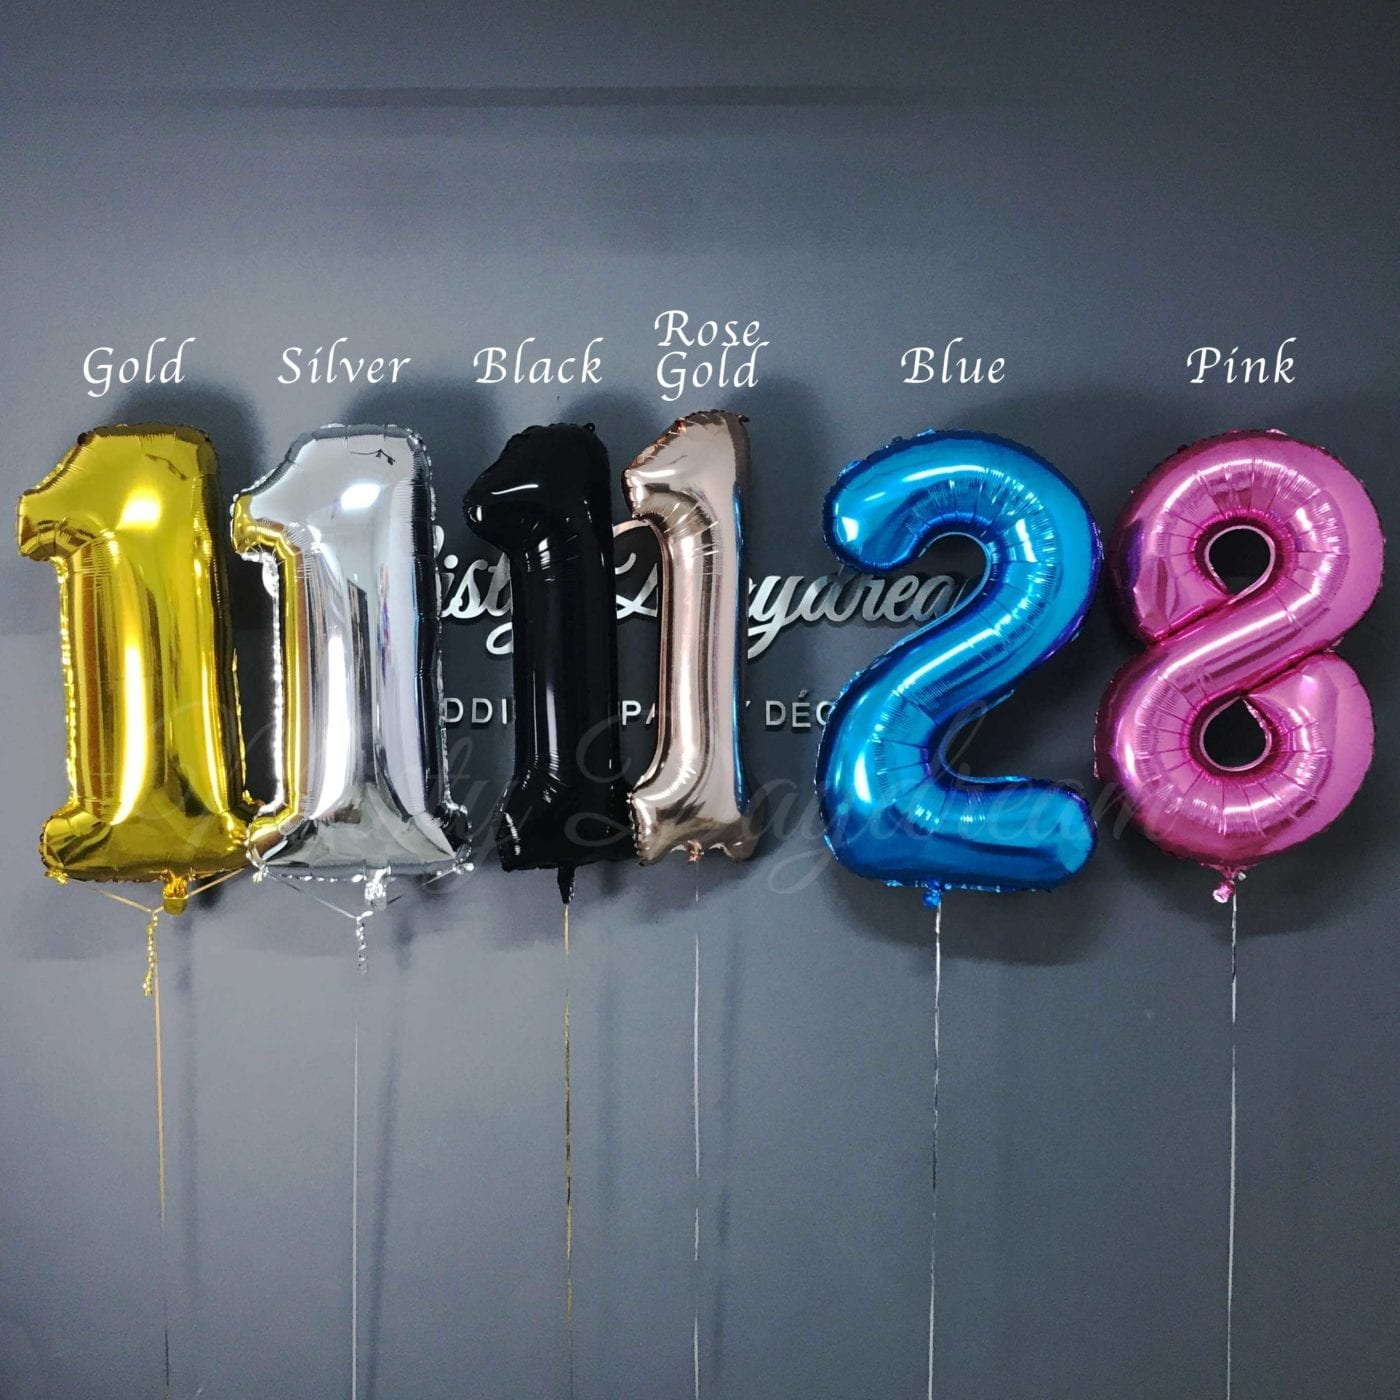 40 Inch Number Foil Balloons Gold Giant Mylar Number